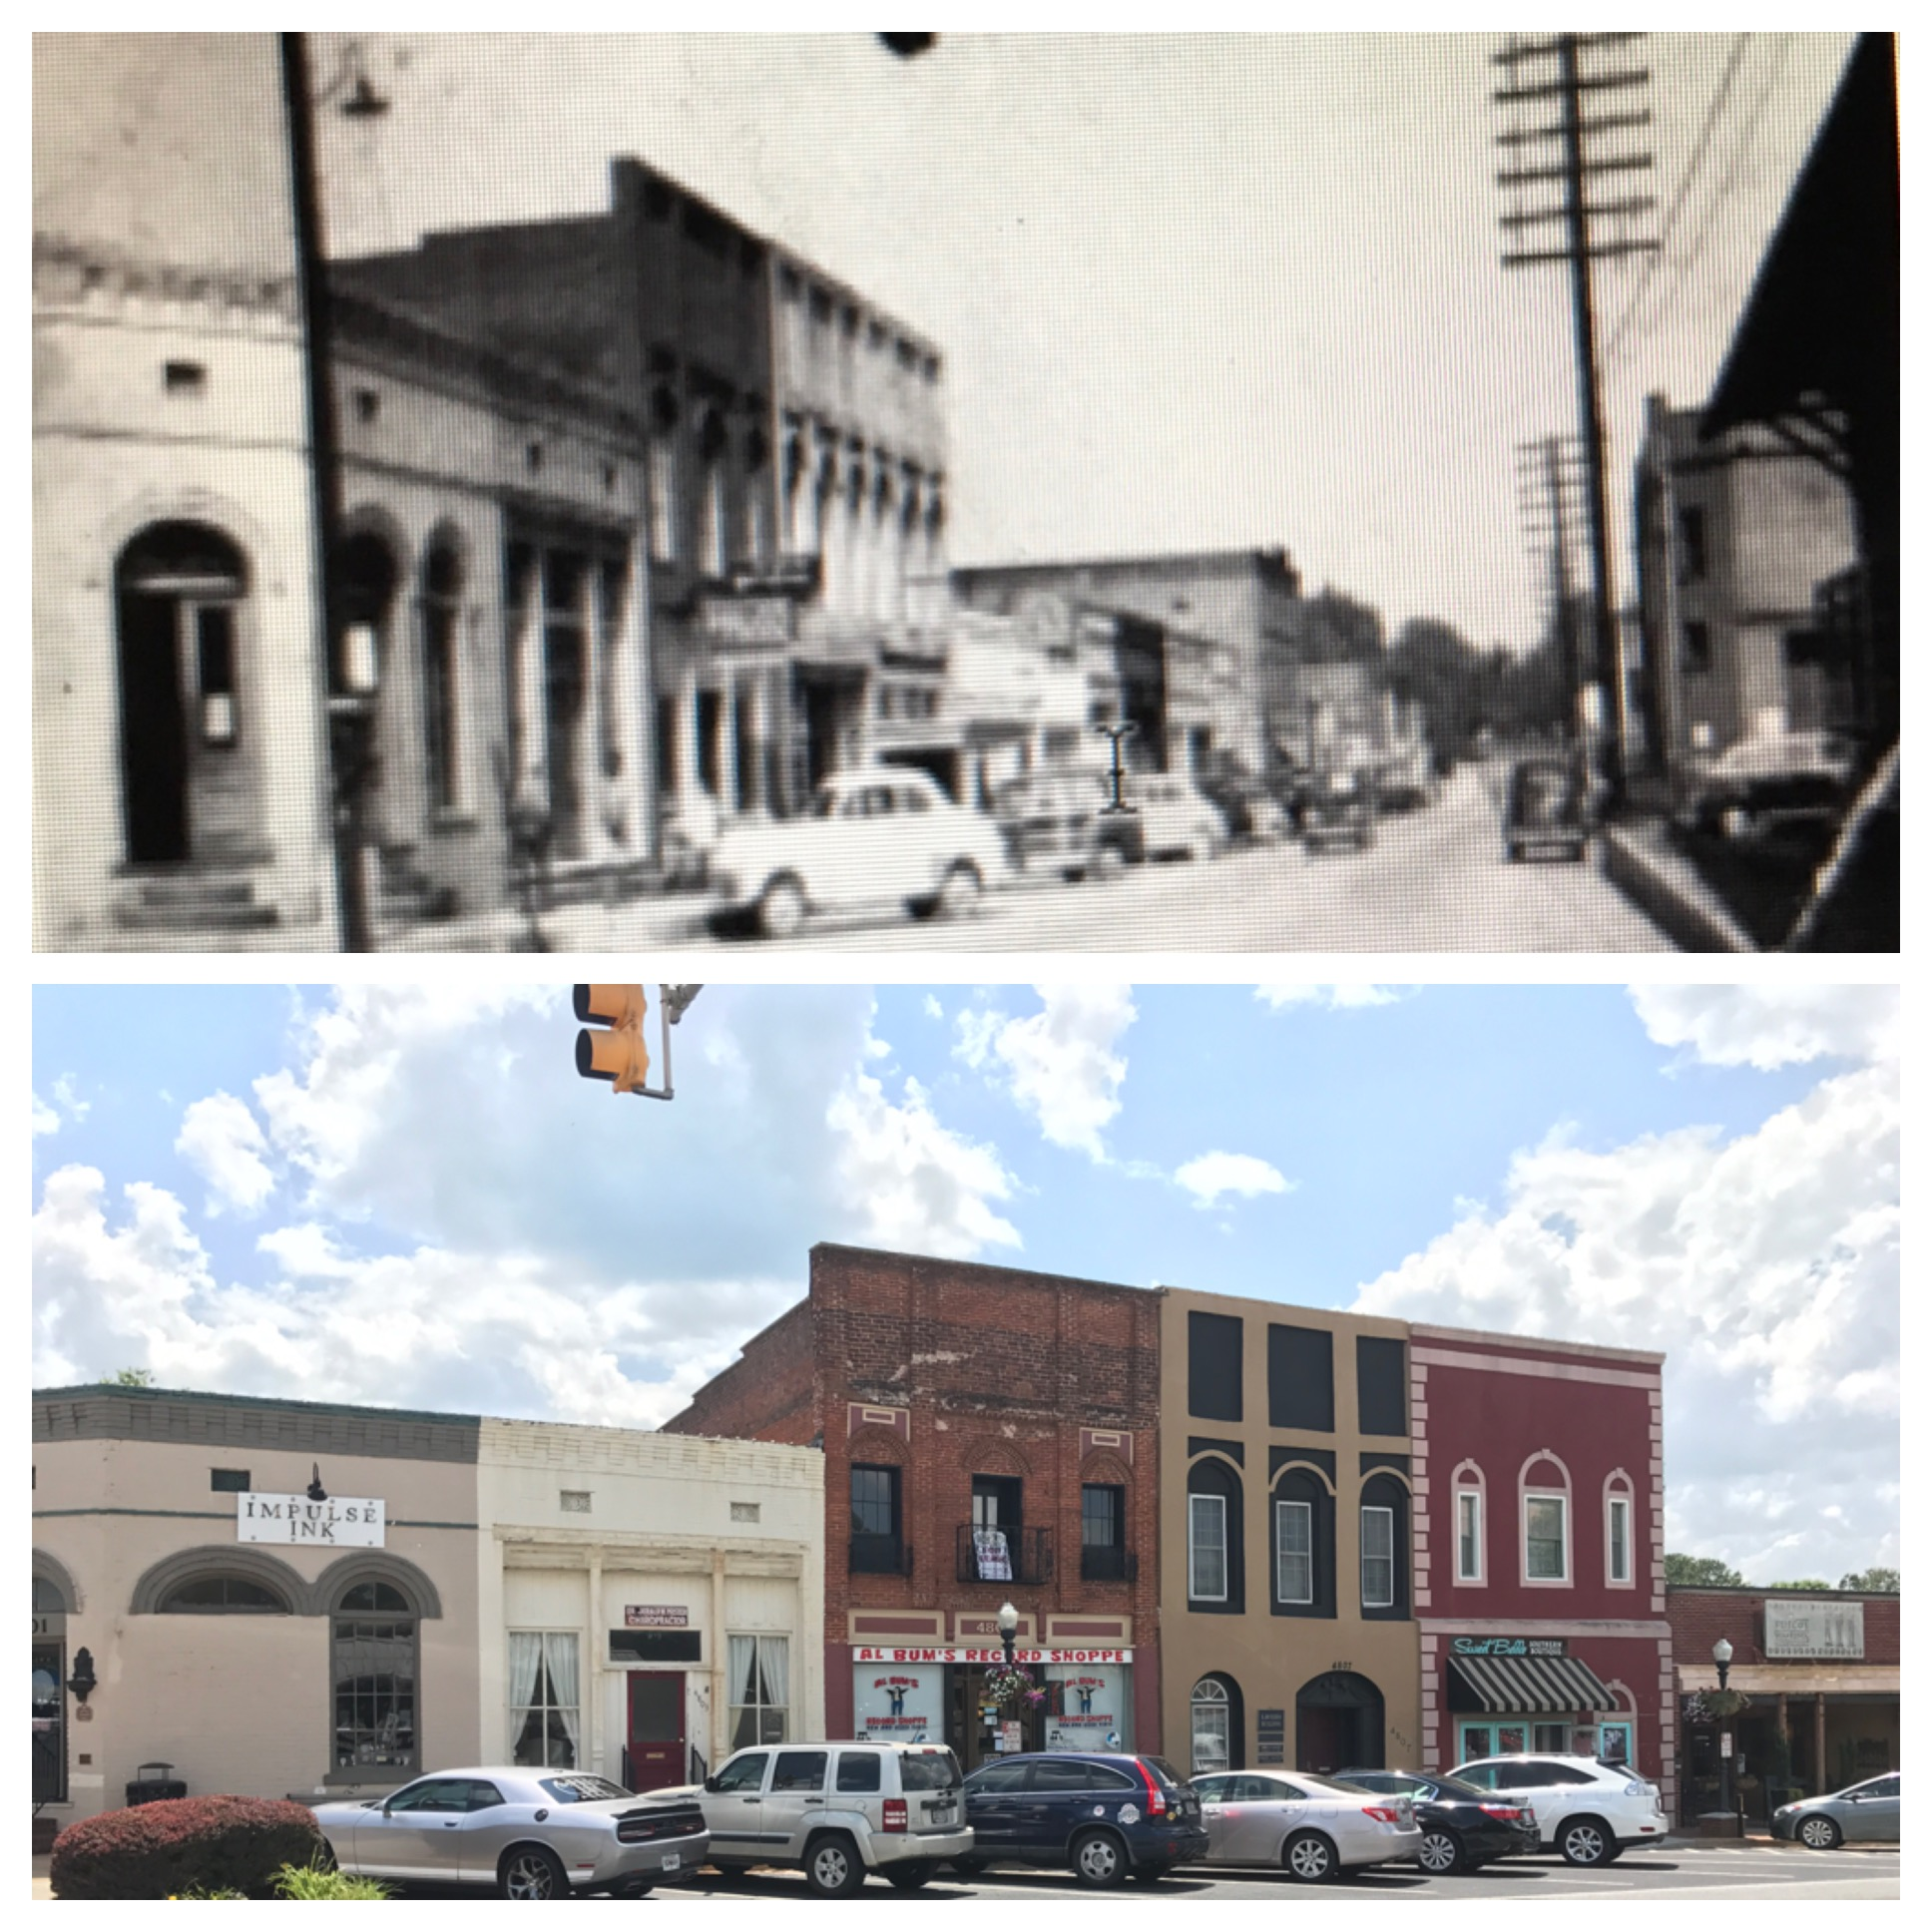 A comparison of an earlier photo taken along N. Main Street versus today.